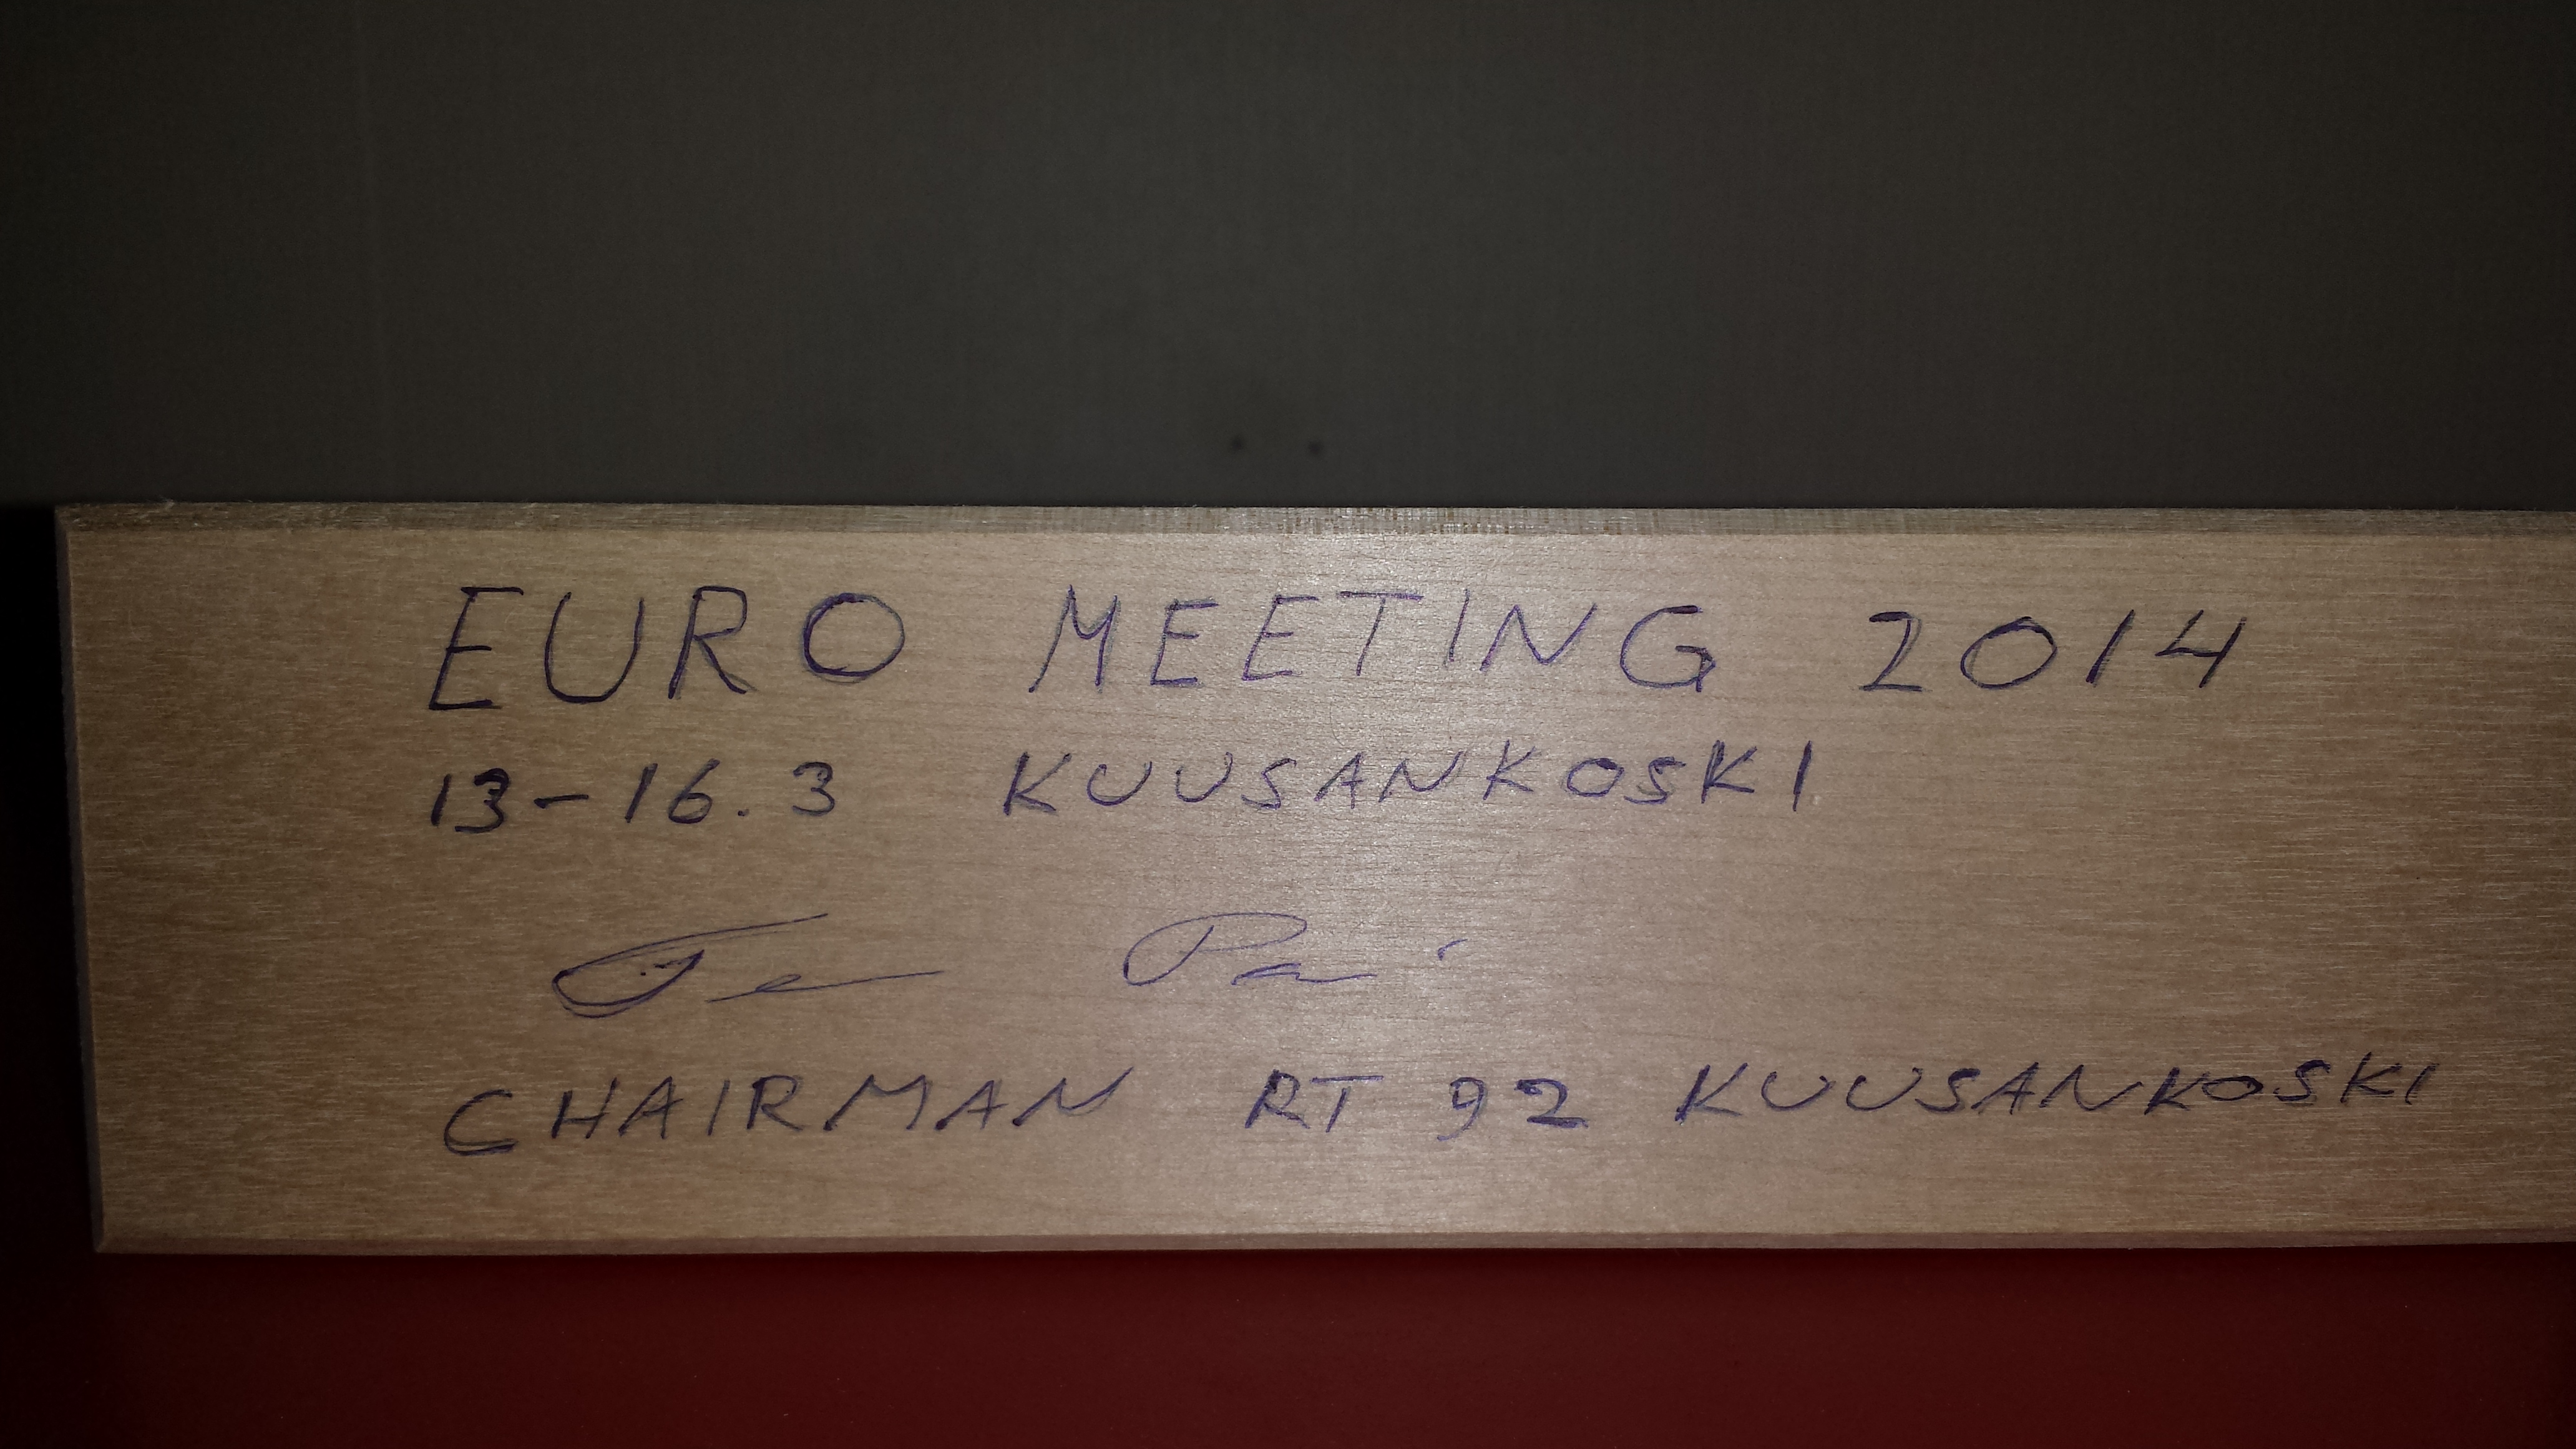 A present from our brother table in Kuusankoski Finland, when hosting Euromeeting 92 in 2014